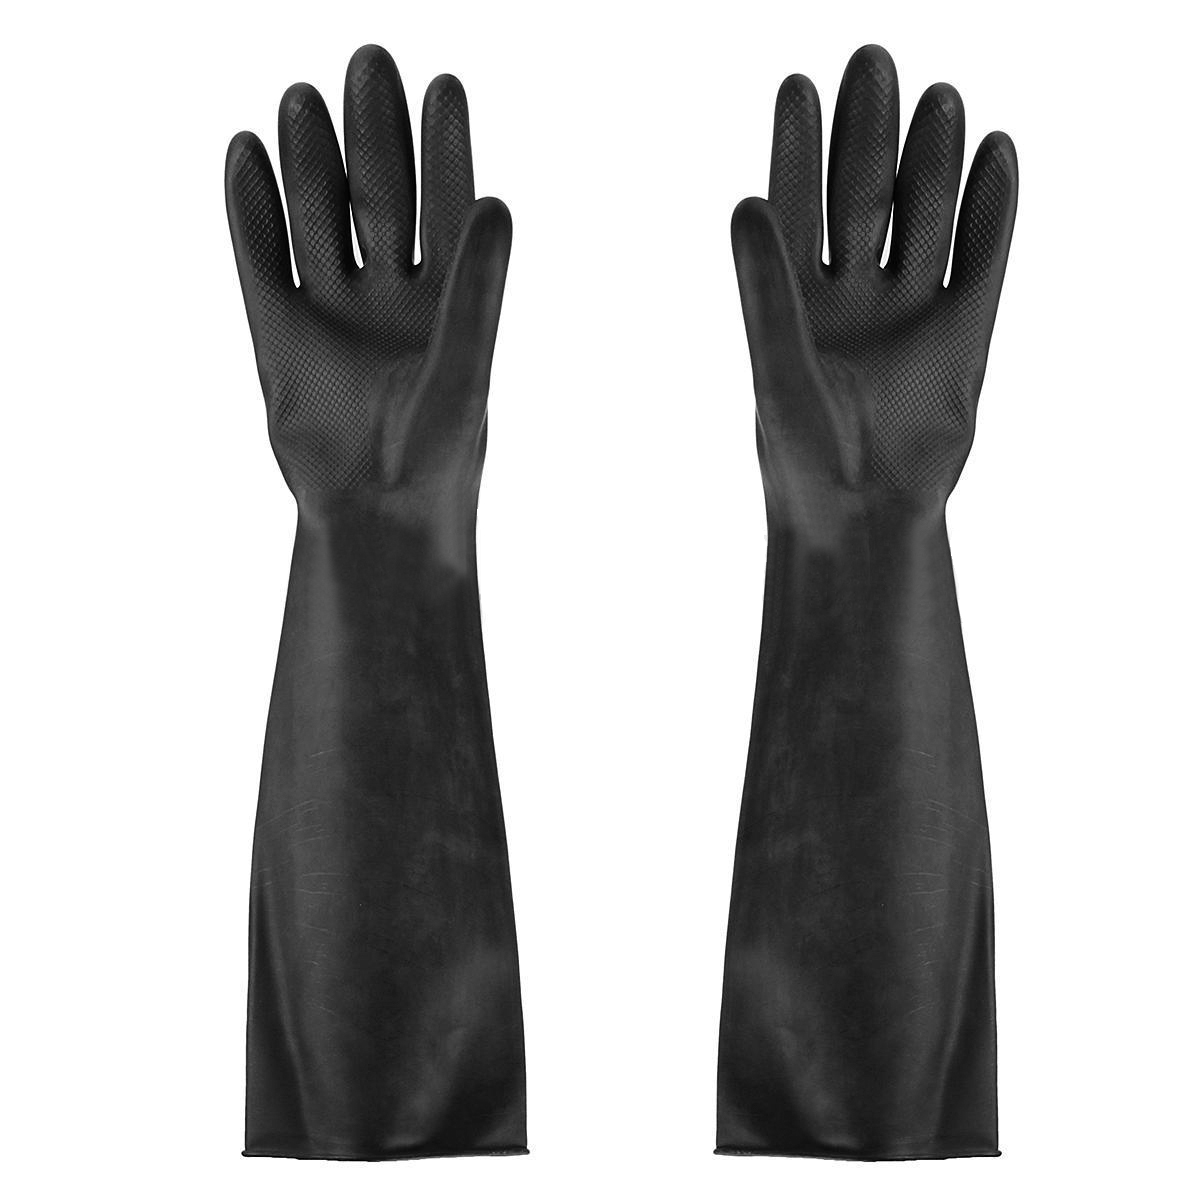 Black gardening gloves - Black Long Protective Garden Industry Rubber Gloves Elastic Anti Acid Alkali Rubber Work Comfortable Chemical Gloves